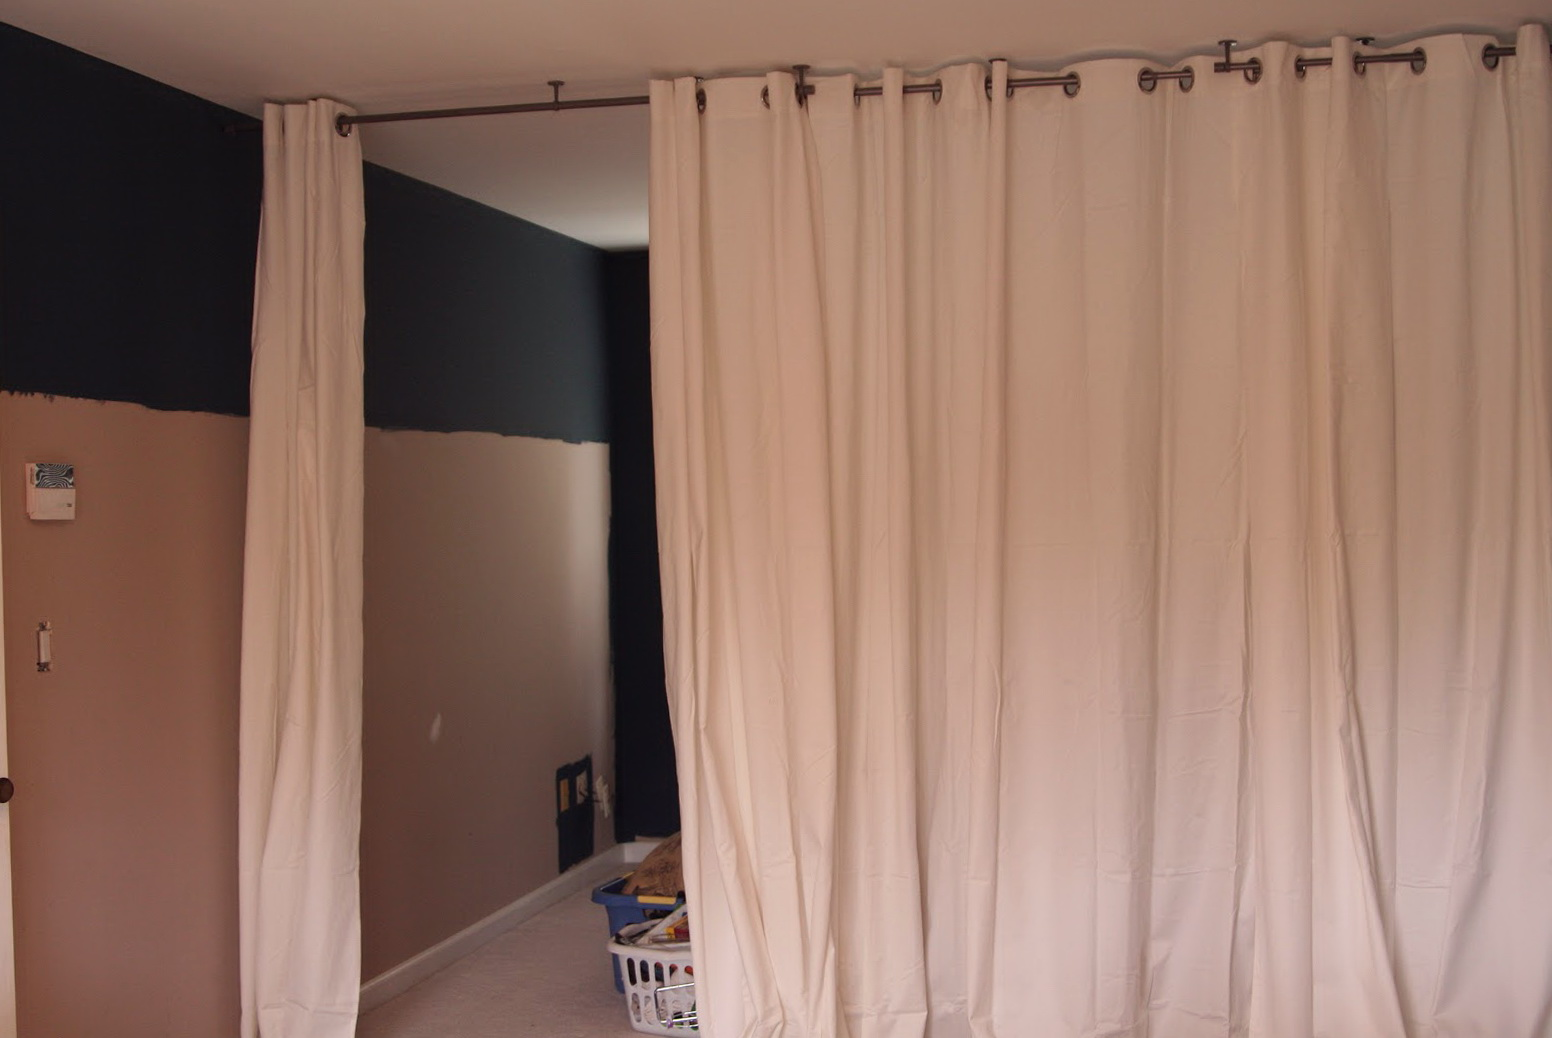 Ikea panel curtains room divider home design ideas for Room divider curtain ikea